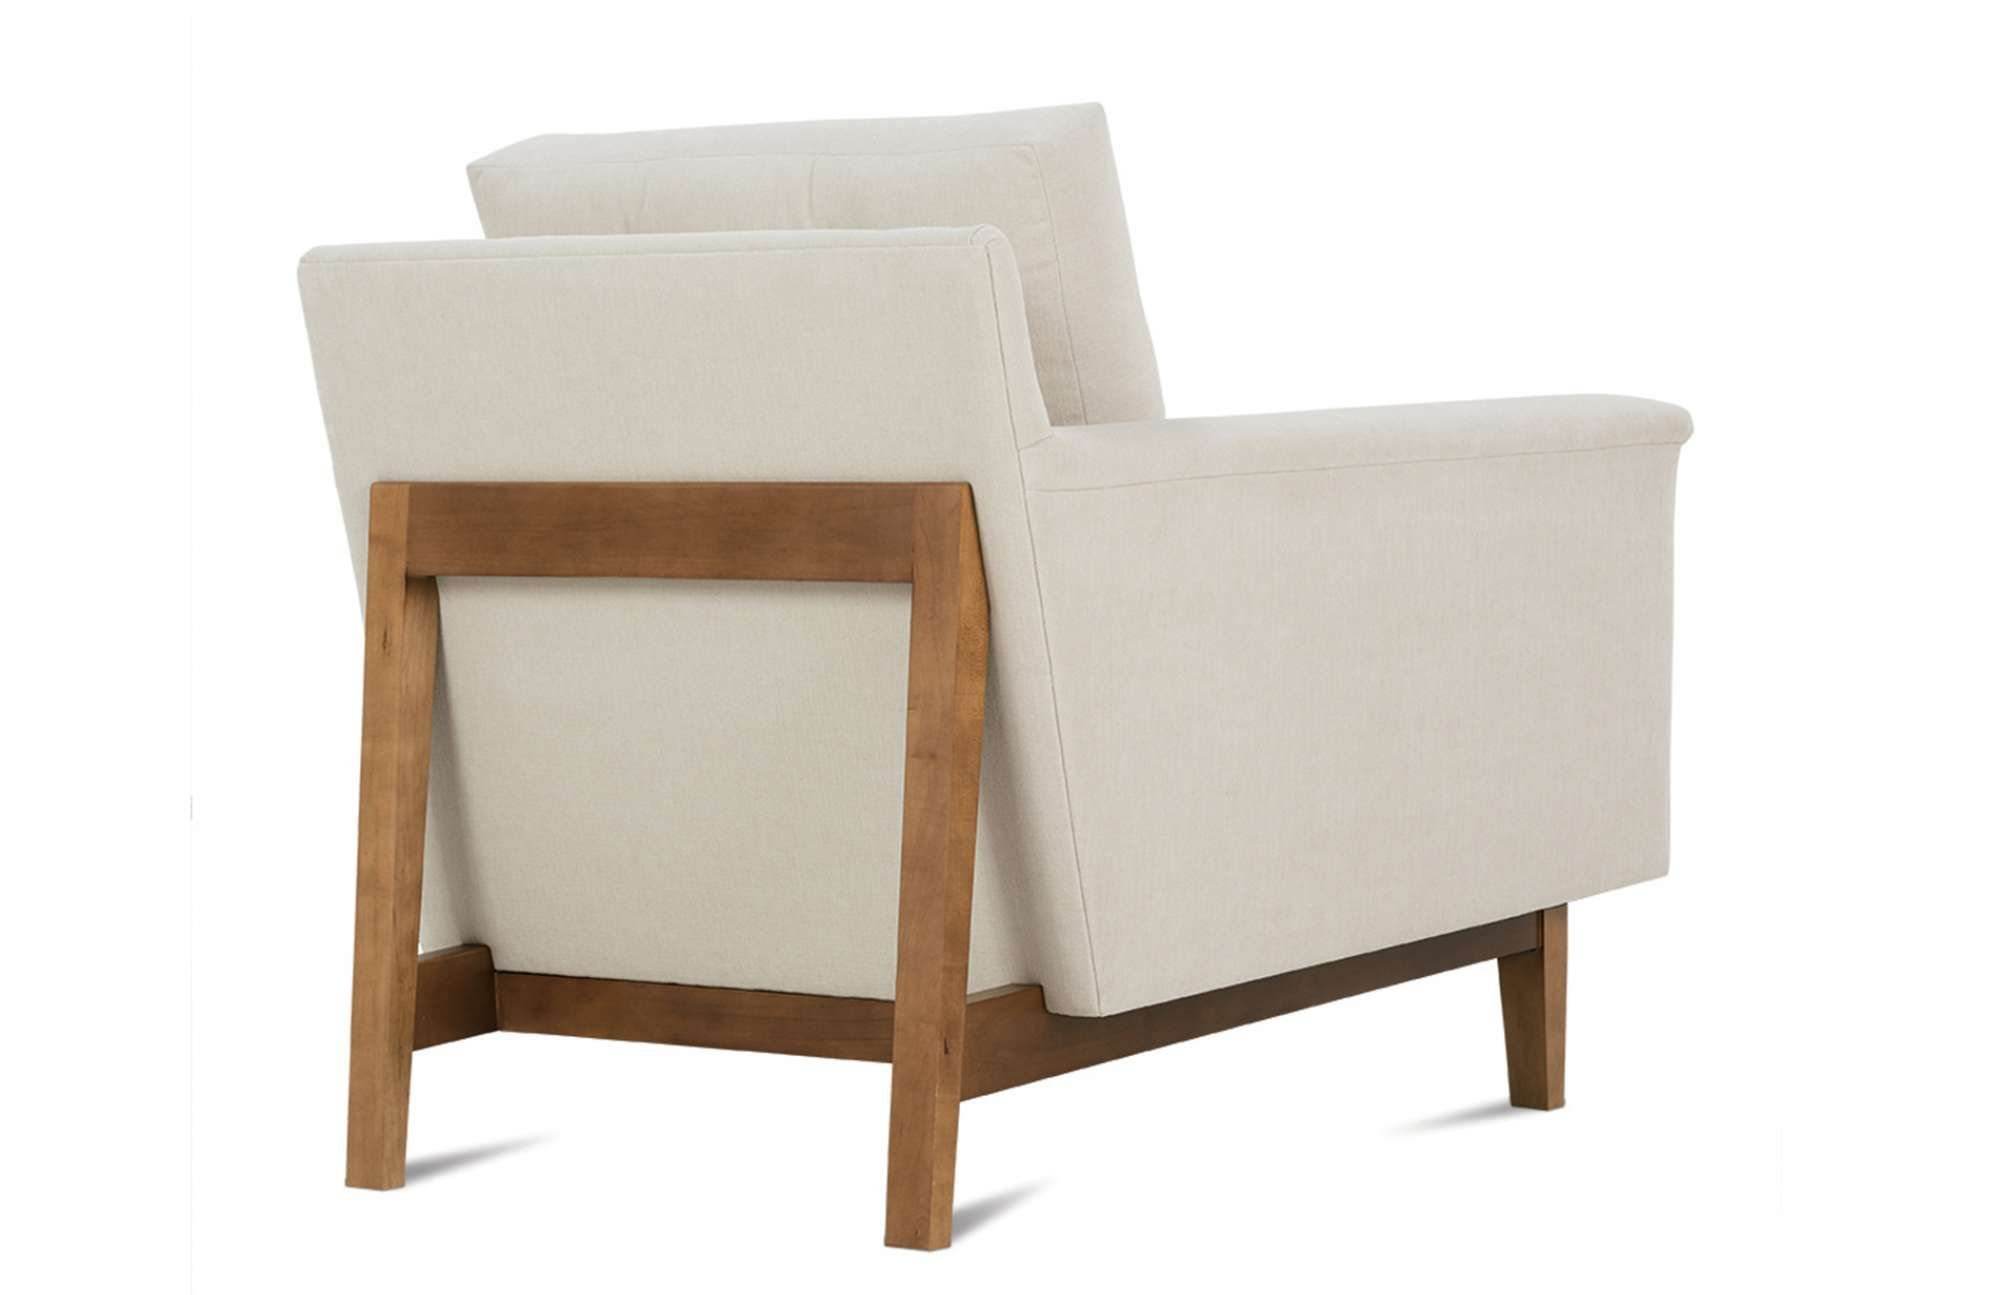 perfect posture chair. The Ethan Chair From Rowe Furniture Places An Emphasis On Comfort And Posture. This Modern Perfect Posture